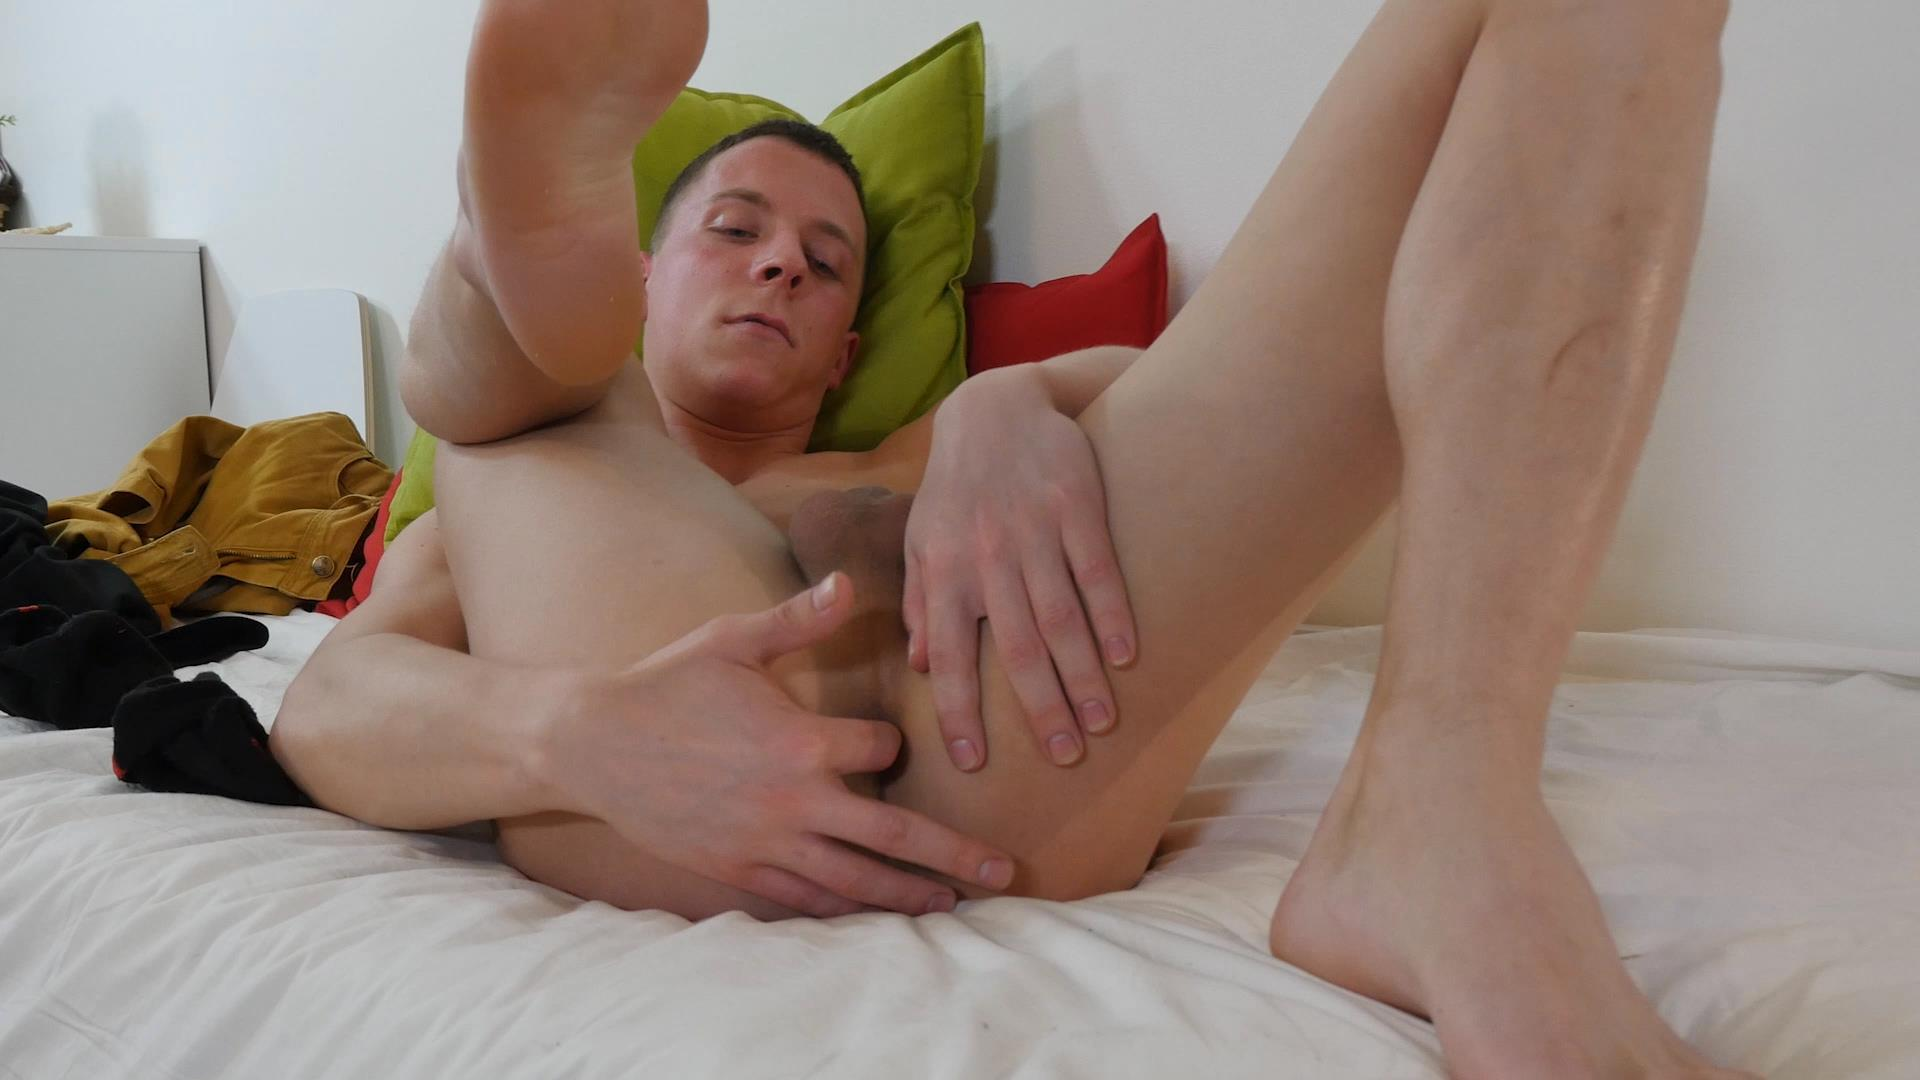 Fucking and mutual stroking for cum 1